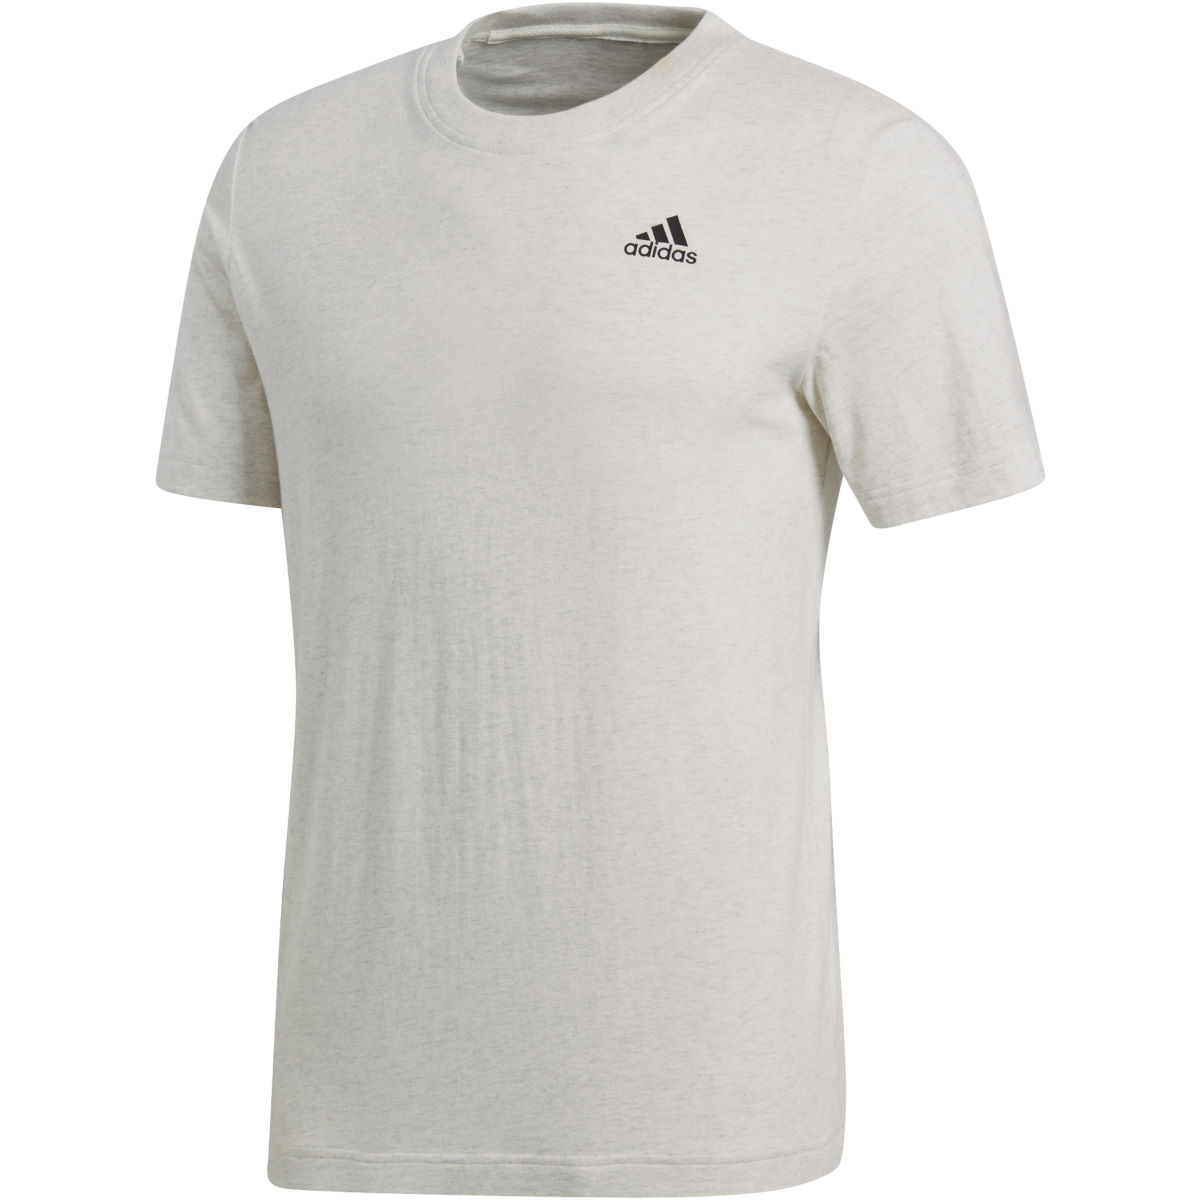 adidas Essentials Base T-Shirt - Camisetas